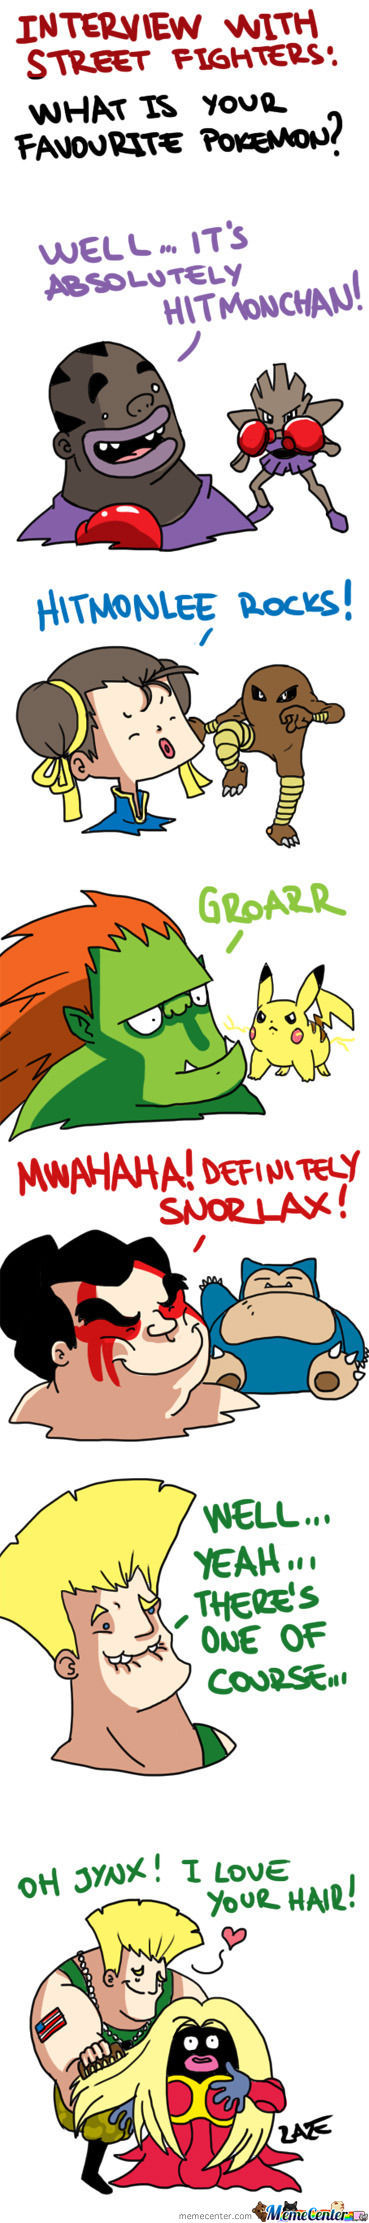 Street Fighter X Pokemon